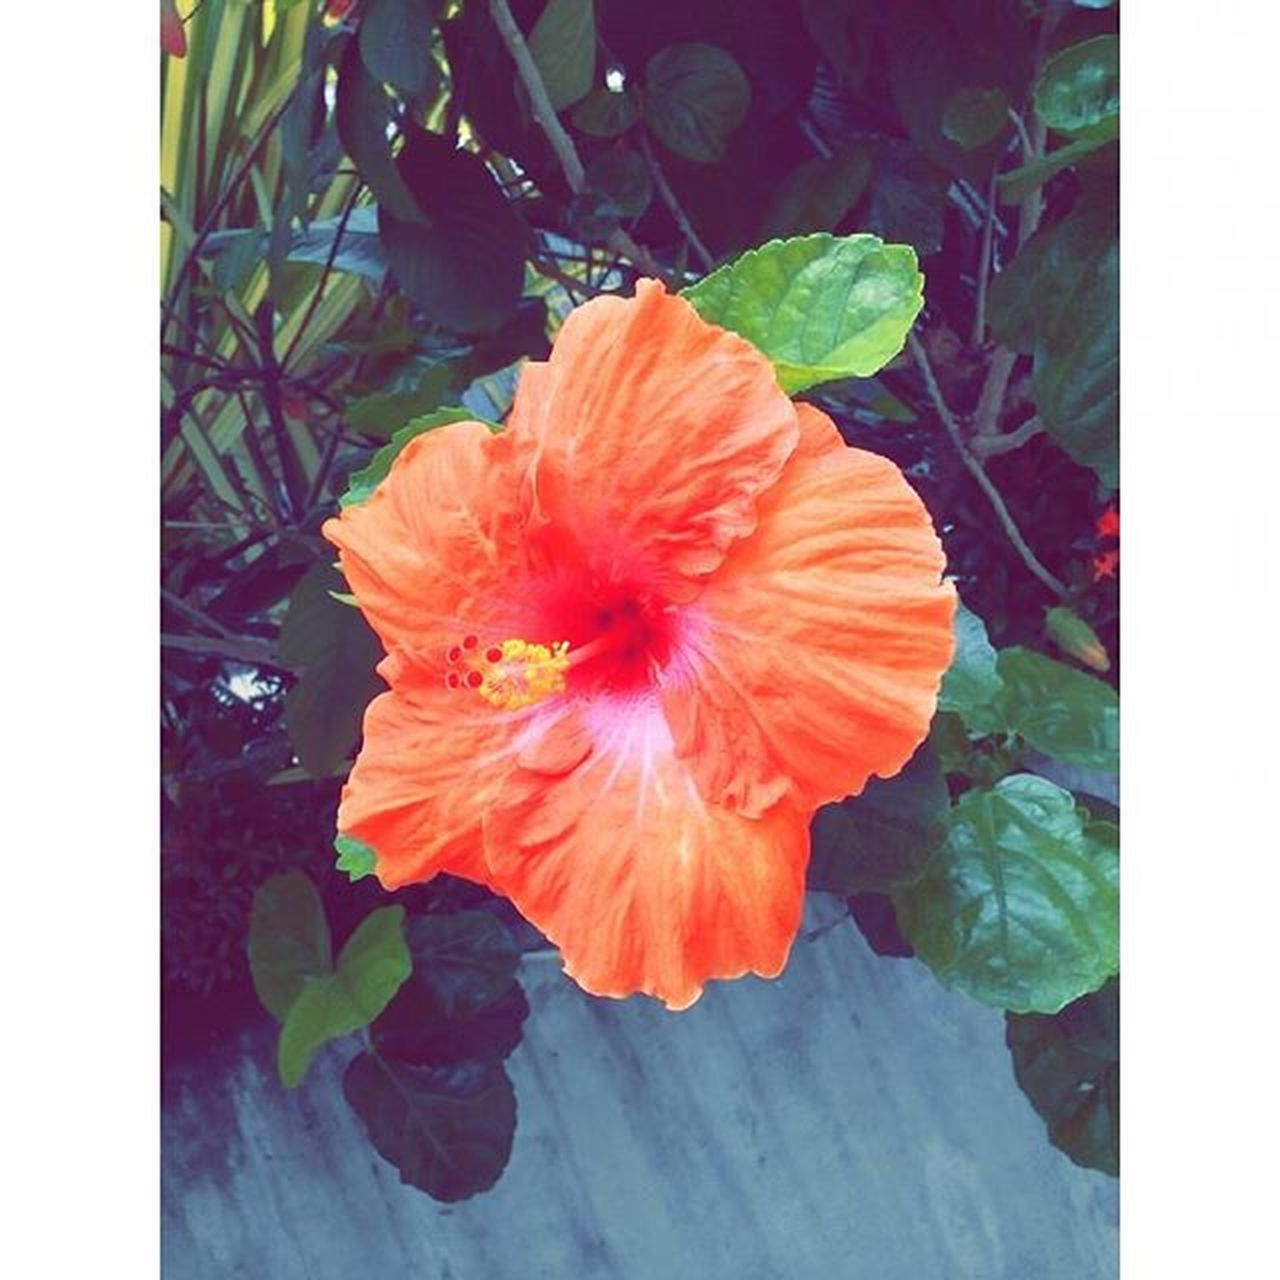 flower, plant, leaf, petal, growth, nature, flower head, beauty in nature, fragility, freshness, no people, outdoors, blooming, poppy, day, hibiscus, close-up